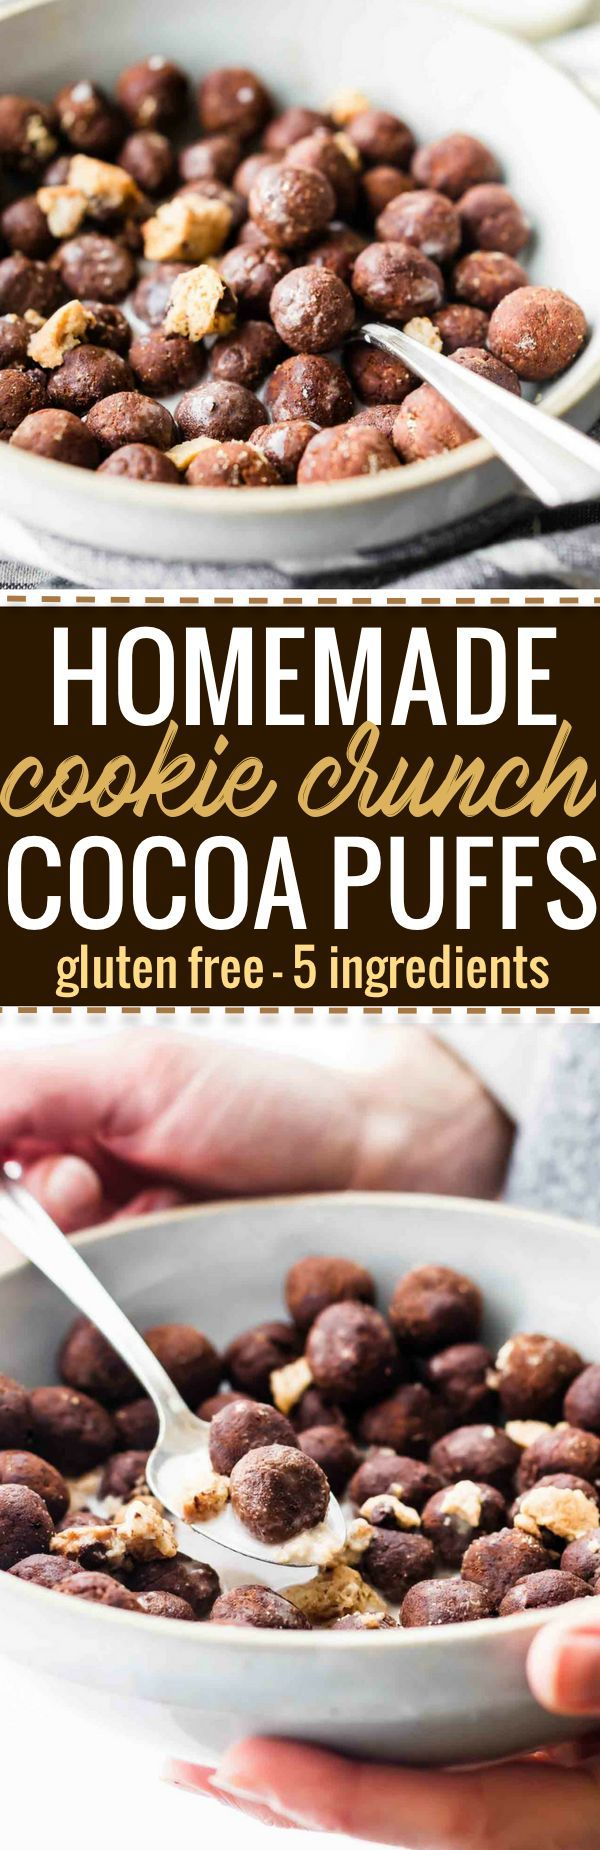 Cookie Crunch Cocoa Puffs Homemade Cereal made with just 5 Ingredients! Gluten Free homemade cereal made right in your kitchen. Healthier, real food based, and so tasty! This Cocoa Puffs cereal tastes just like the real deal but better for you and budget